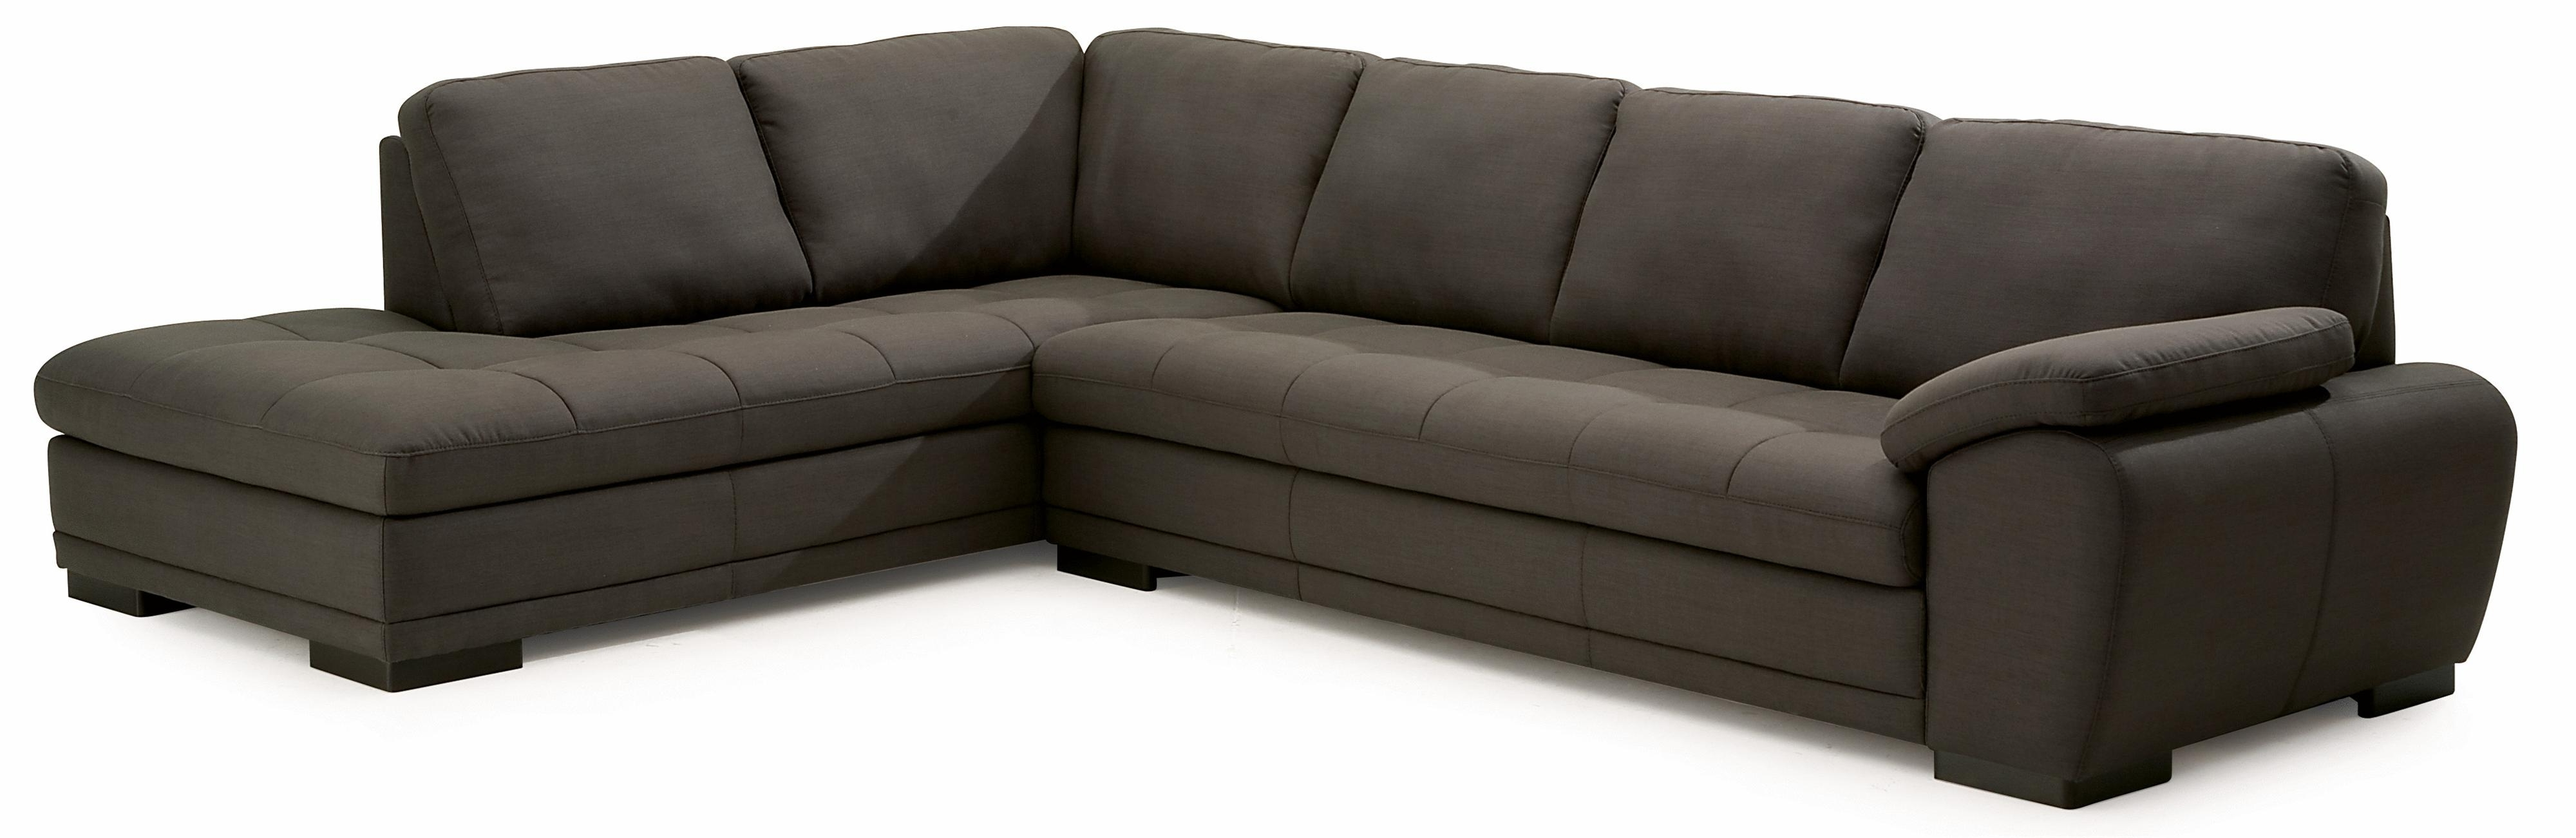 Sectional Sofa Design: Beautiful Sectional Sofas Miami Modern With 2019 Armless Sectional Sofas (View 18 of 20)